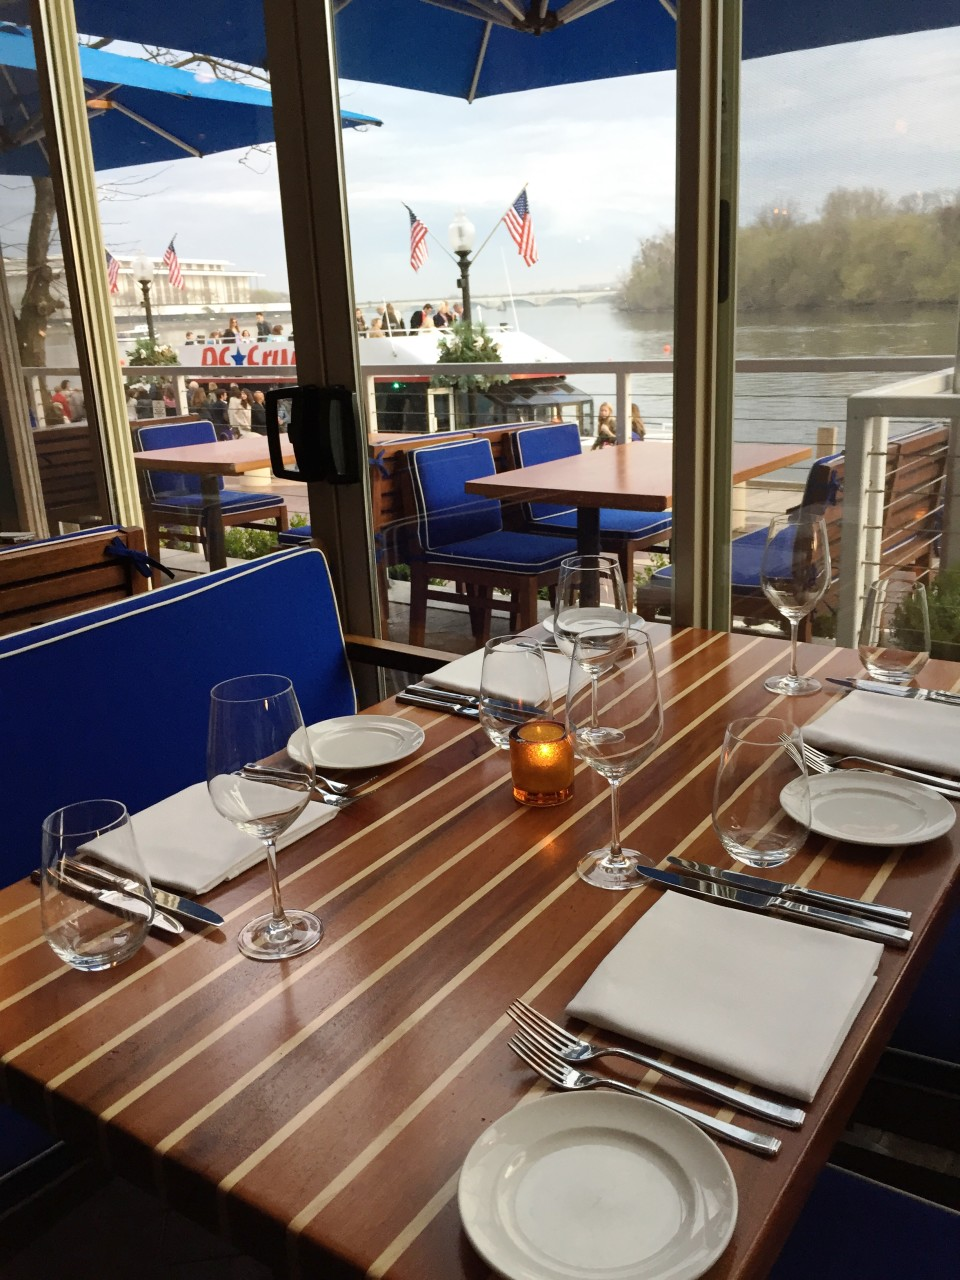 Best View Restaurant Dc 4 Week Eating Plan To Lose Weight